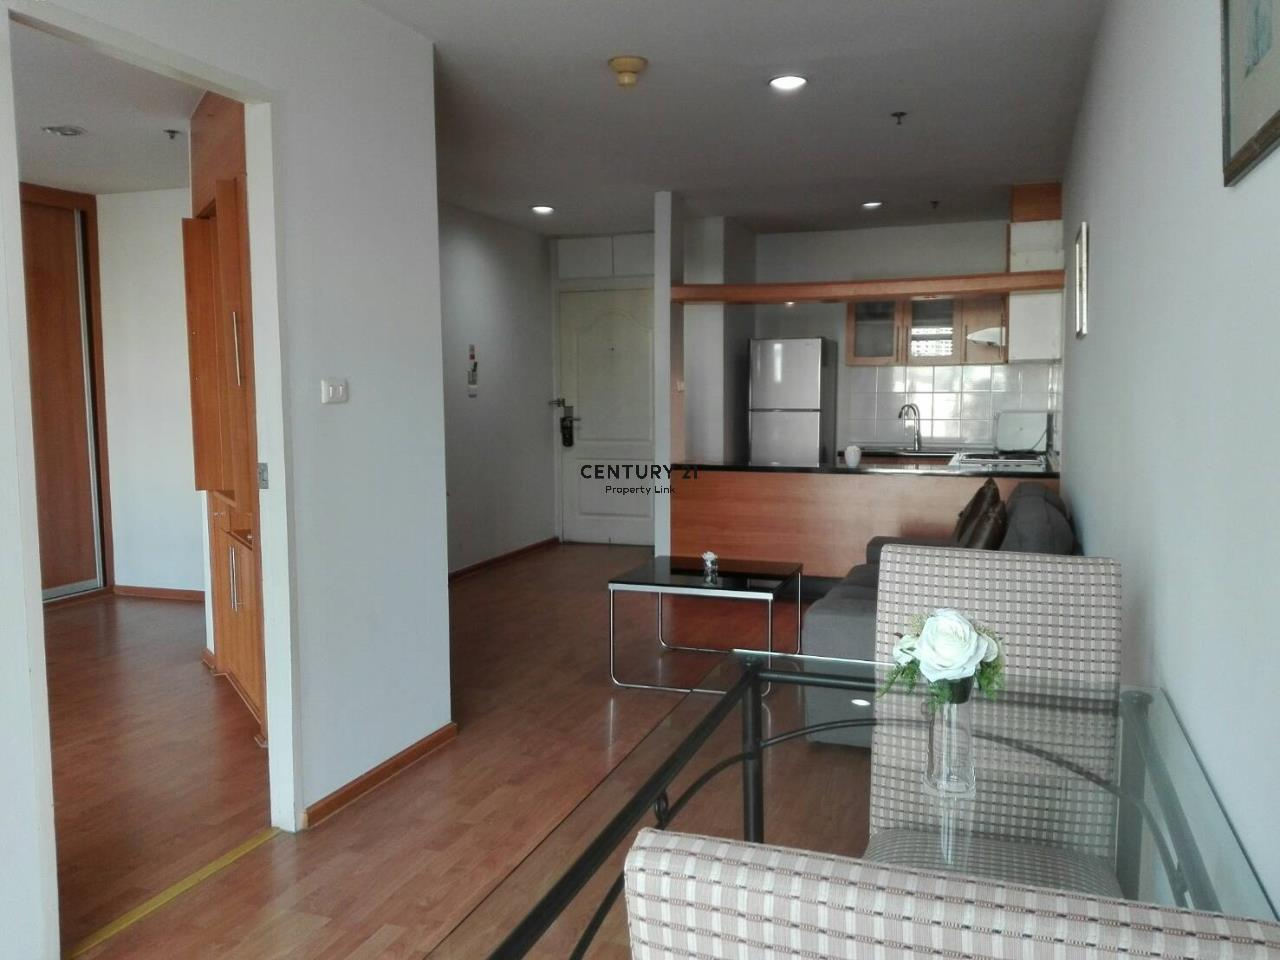 Century21 Property Link Agency's 37-CC-61479 Capital Apartment for Rent 5